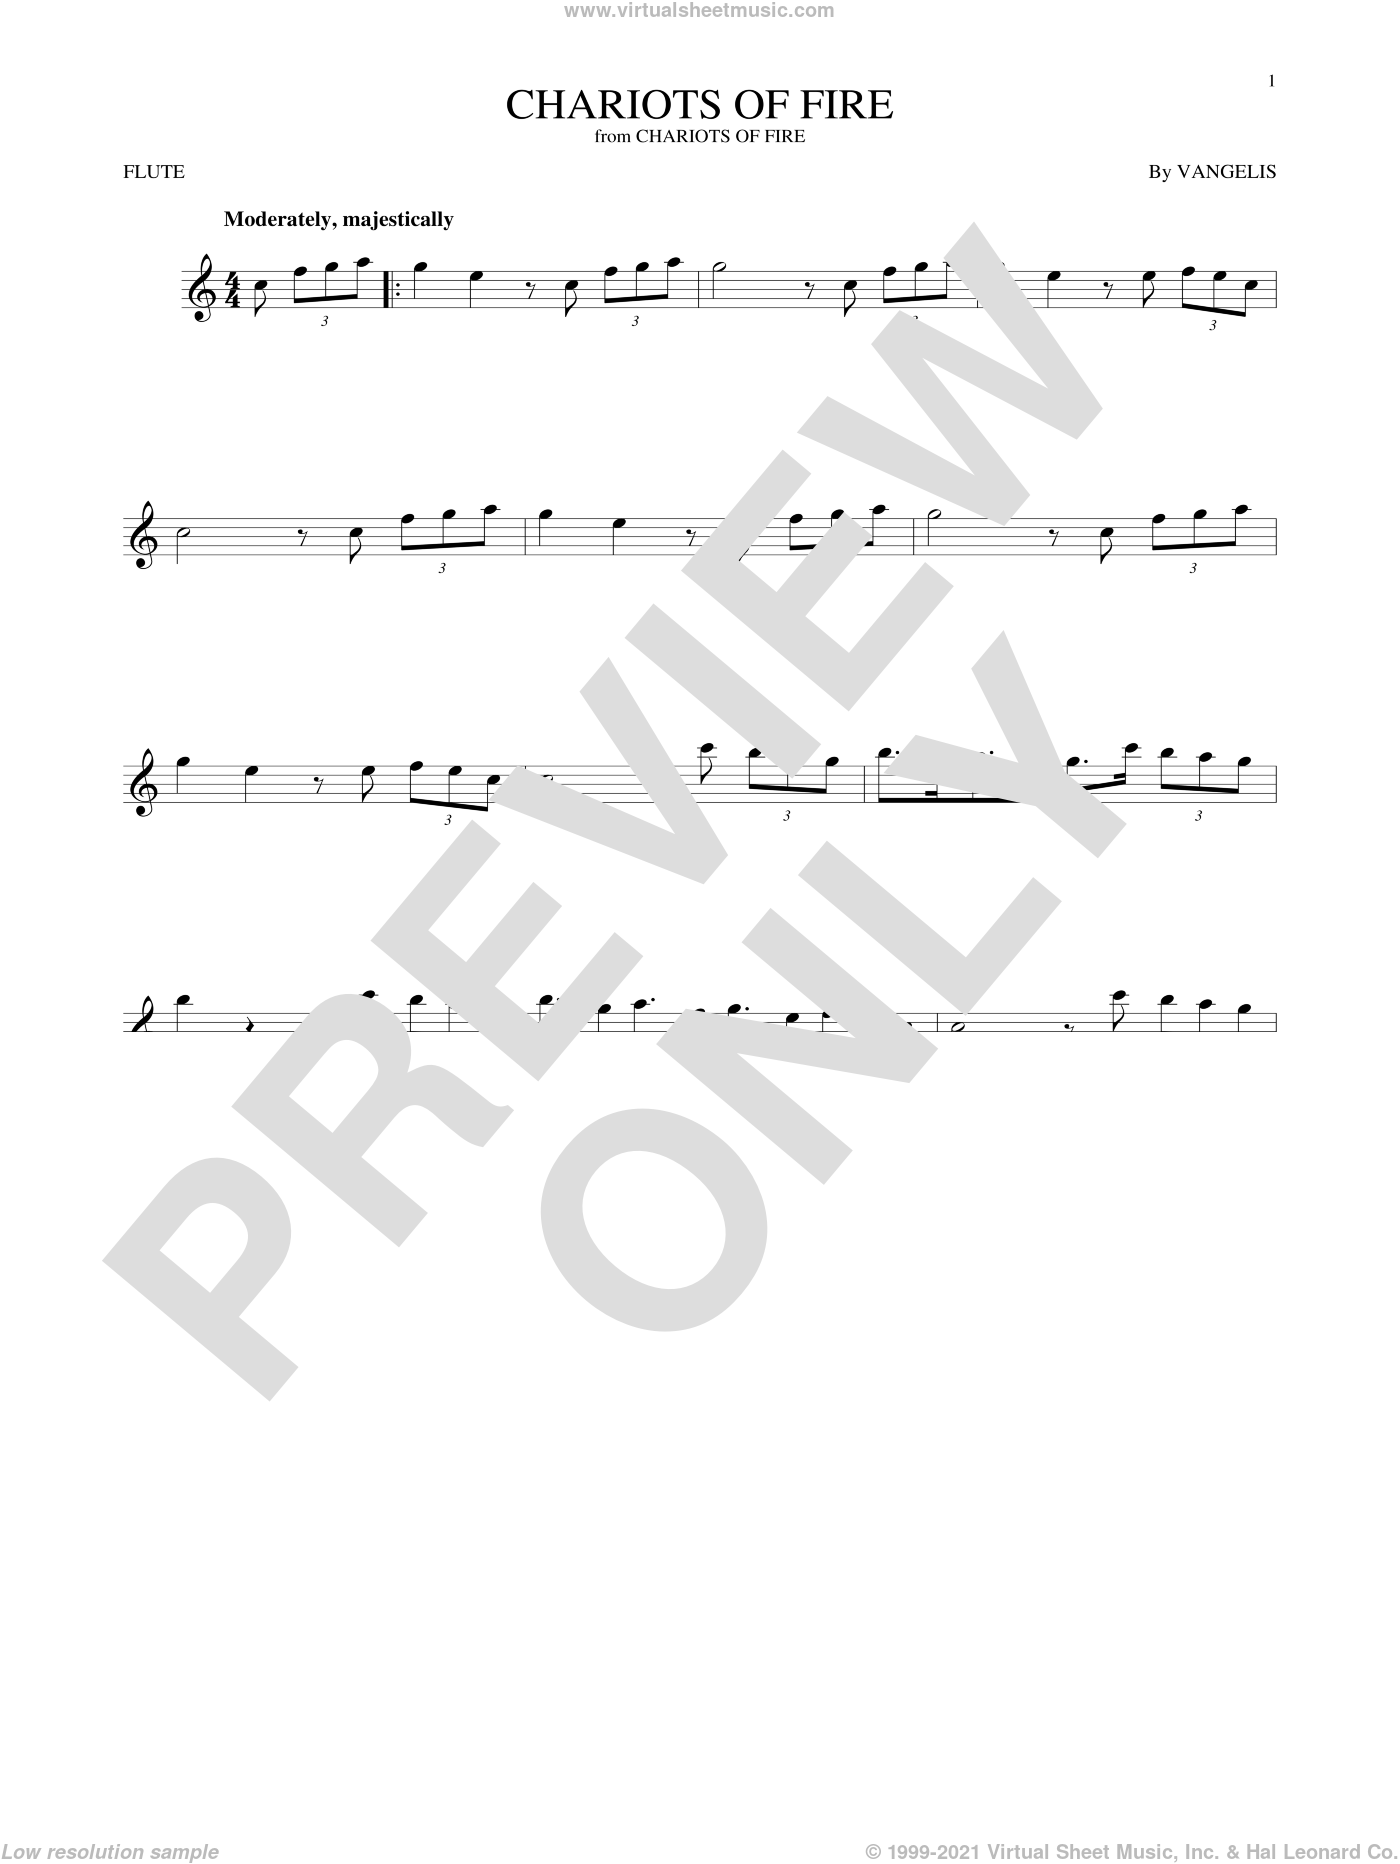 Chariots Of Fire sheet music for flute solo by Vangelis, intermediate skill level